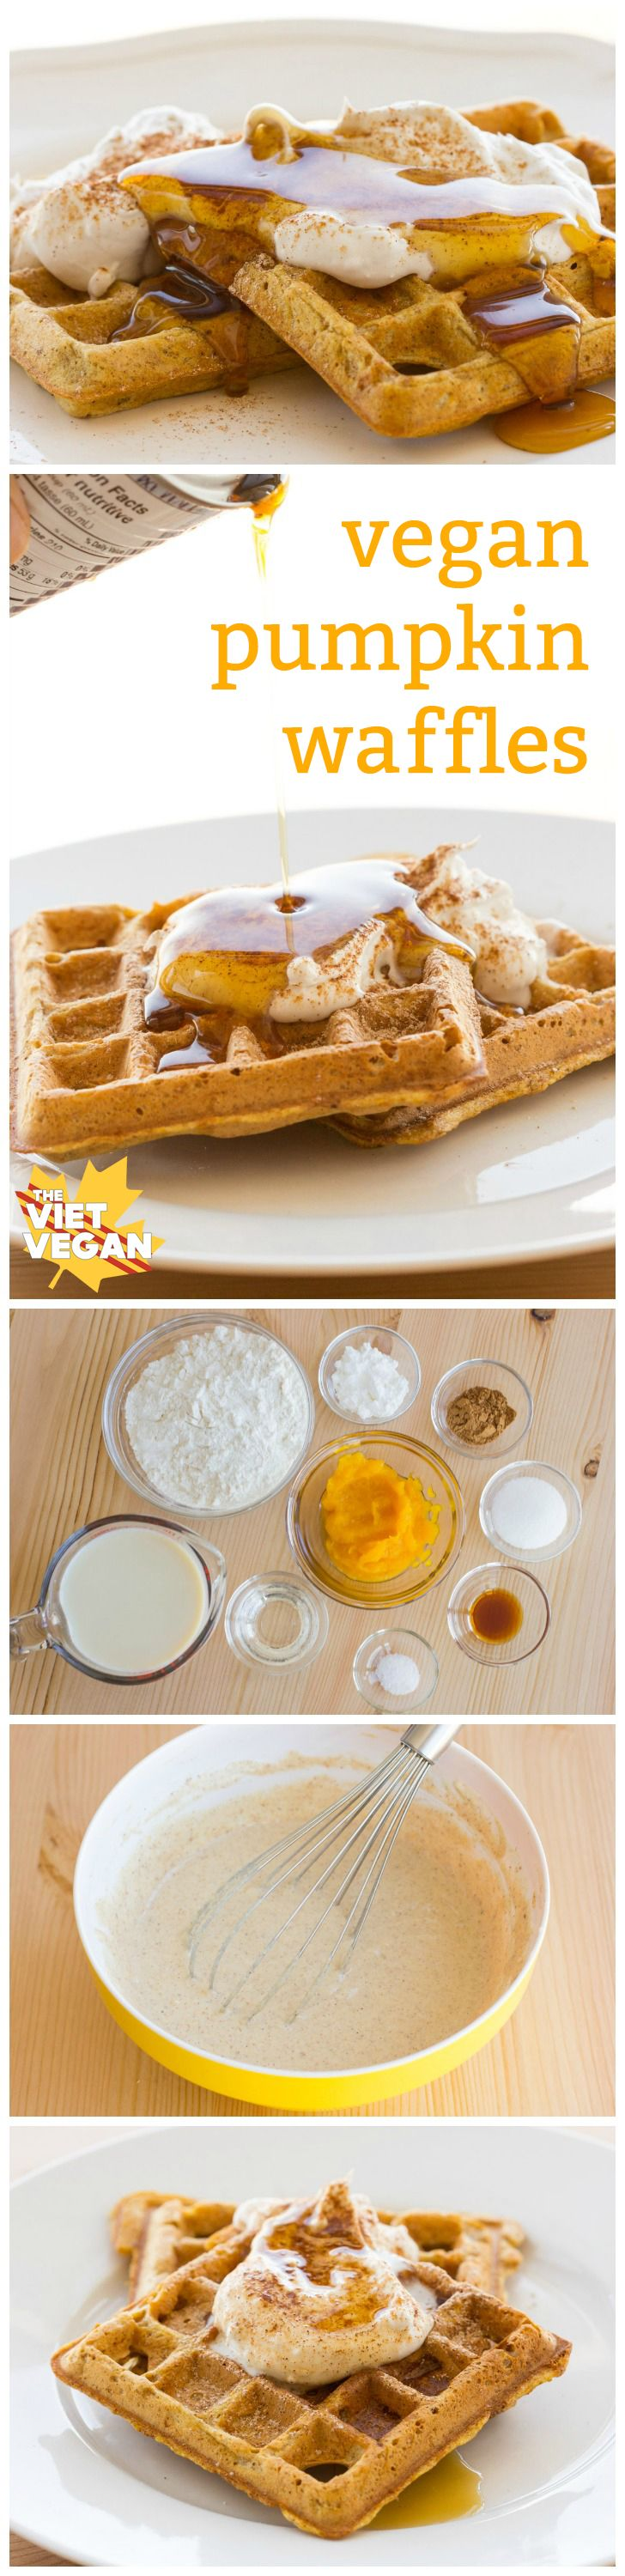 Vegan Pumpkin Waffles | The Viet Vegan | Crisp on the outside, fluffy on the inside, perfect for coconut whipped cream and maple syrup.